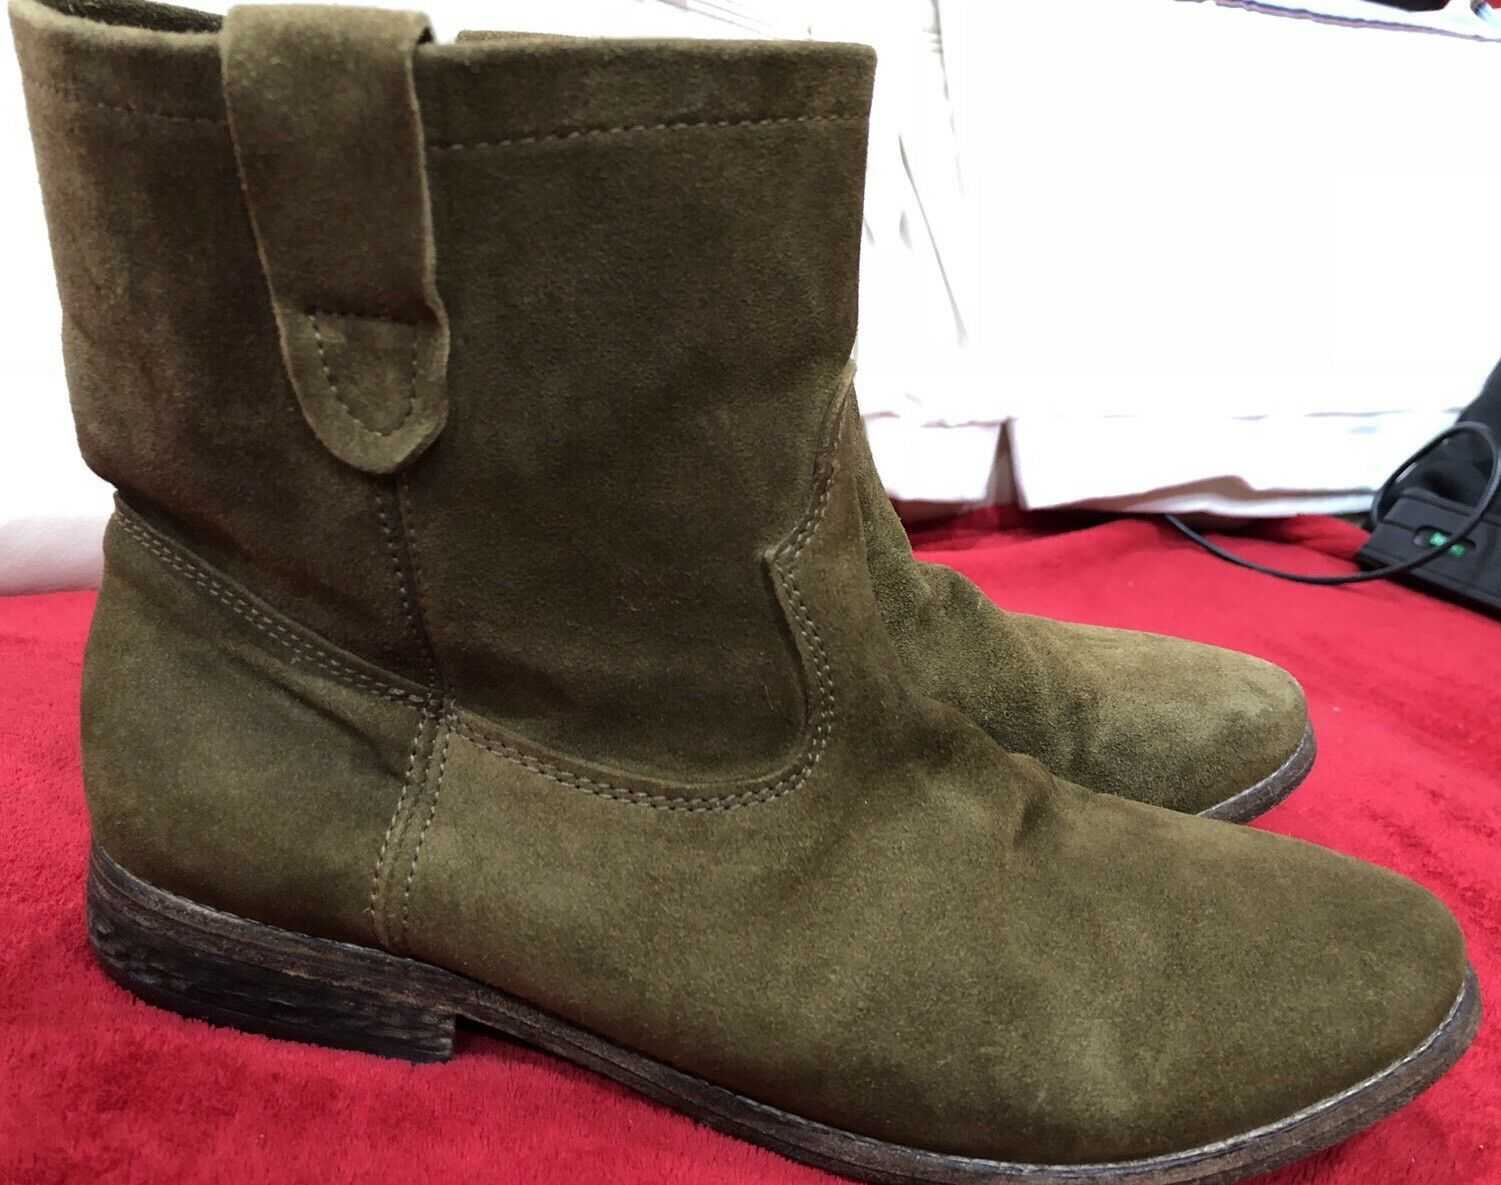 ISABEL MARANT X H&M DICKER BROWN LEATHER BOOTS SIZE 45/ US 11.5 100% SUEDE